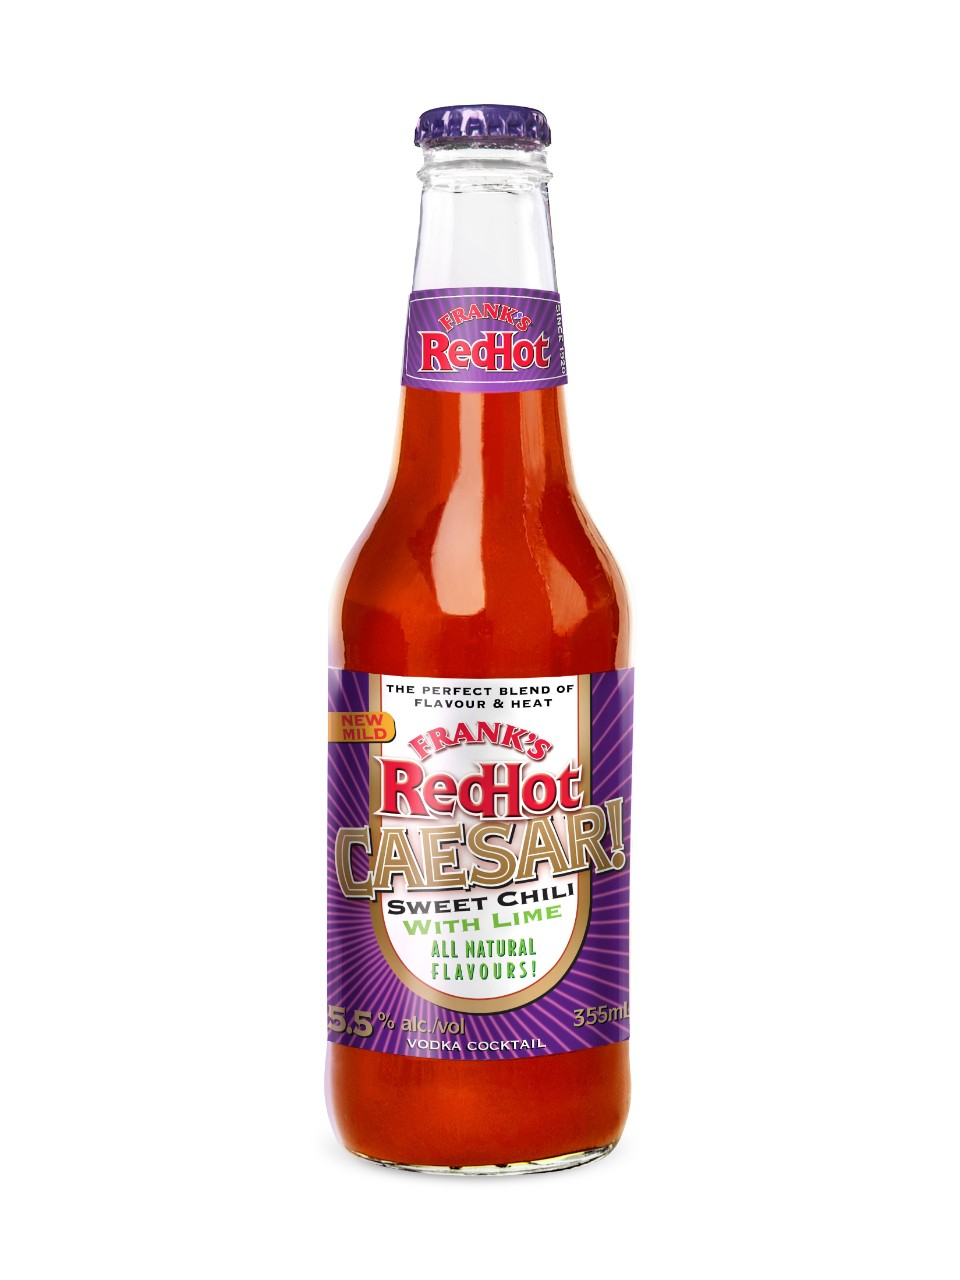 Frank's Redhot Caesar! Sweet Chili Lime